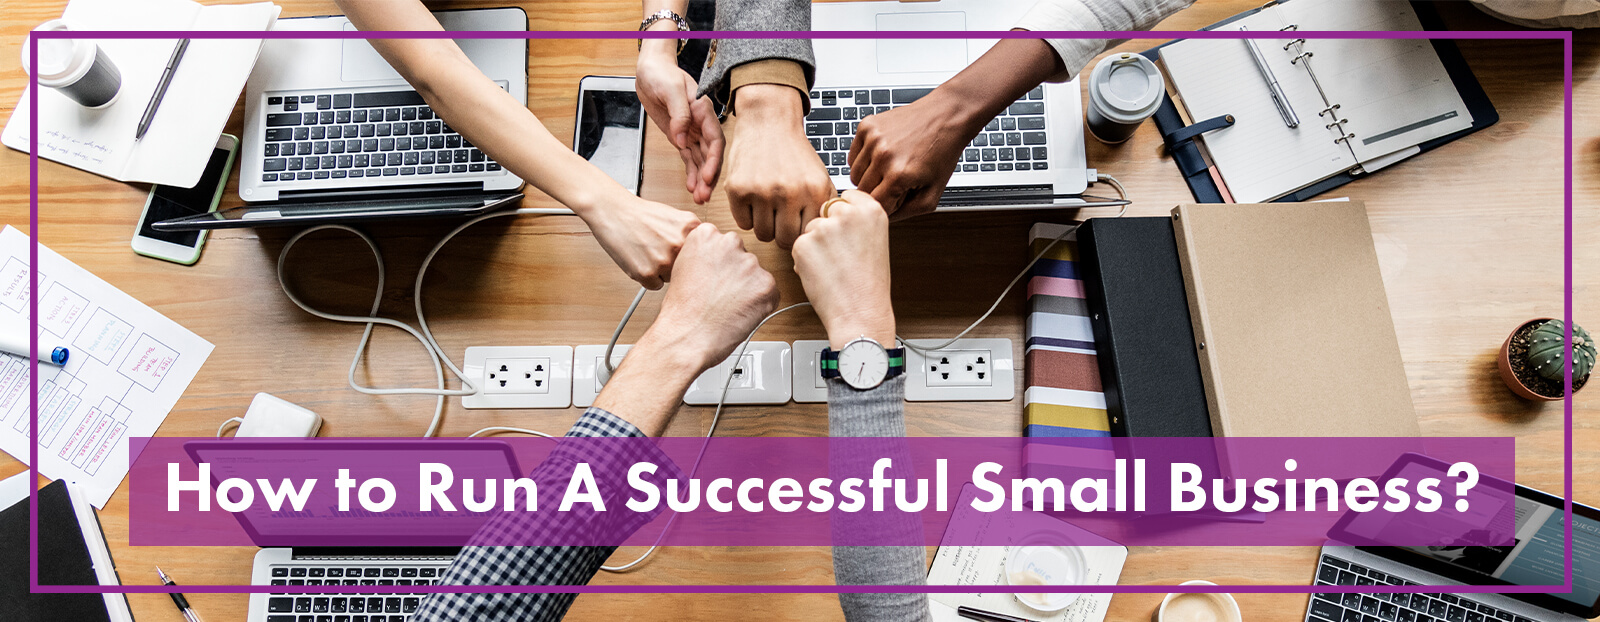 How to Run A Successful Small Business?